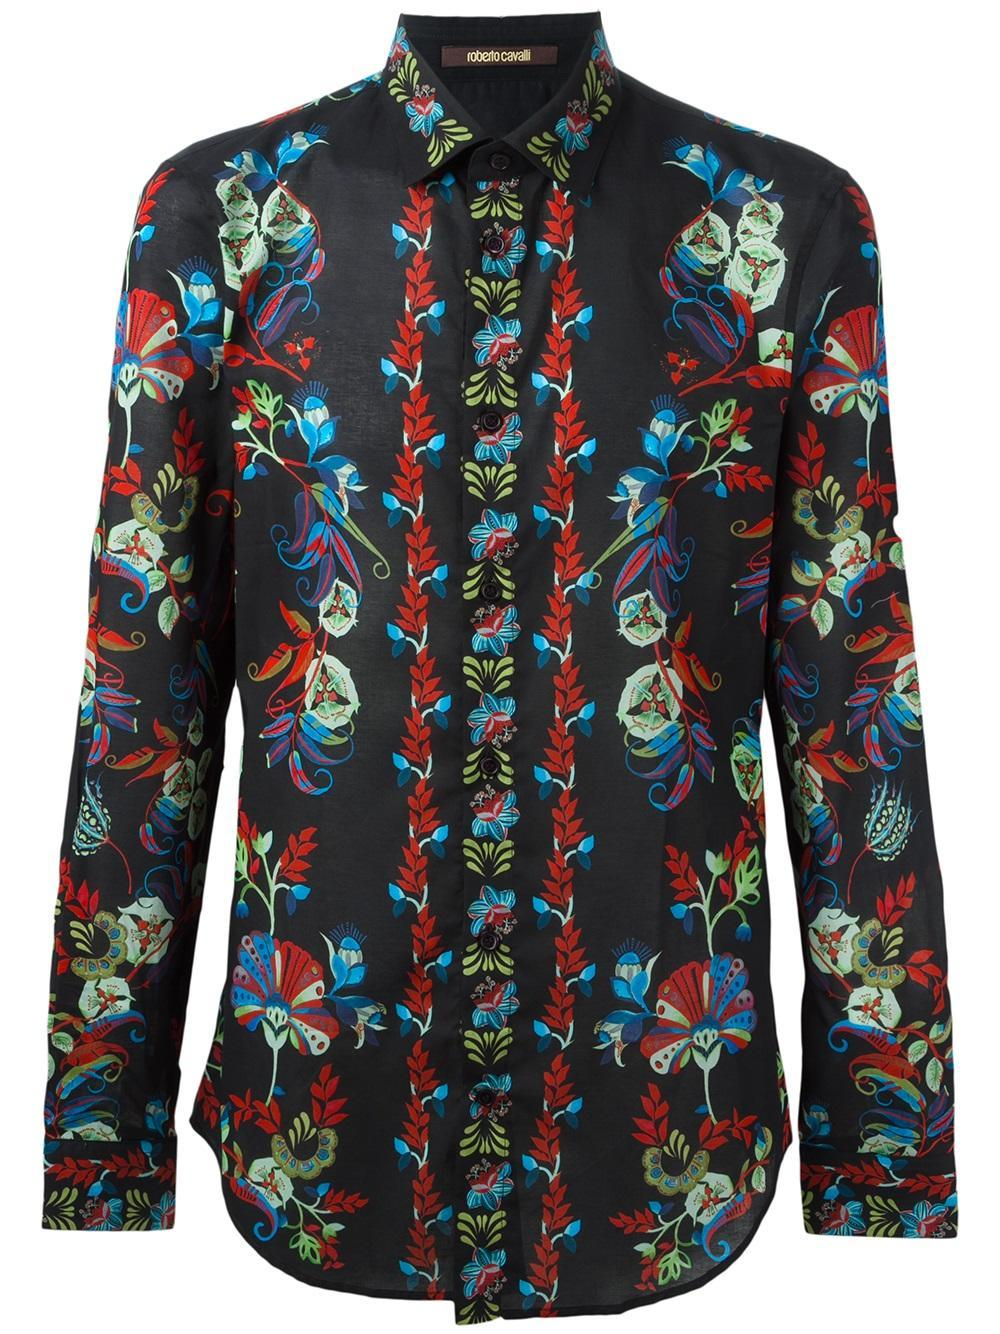 Lyst roberto cavalli floral print shirt in black for men for Printed shirts for men